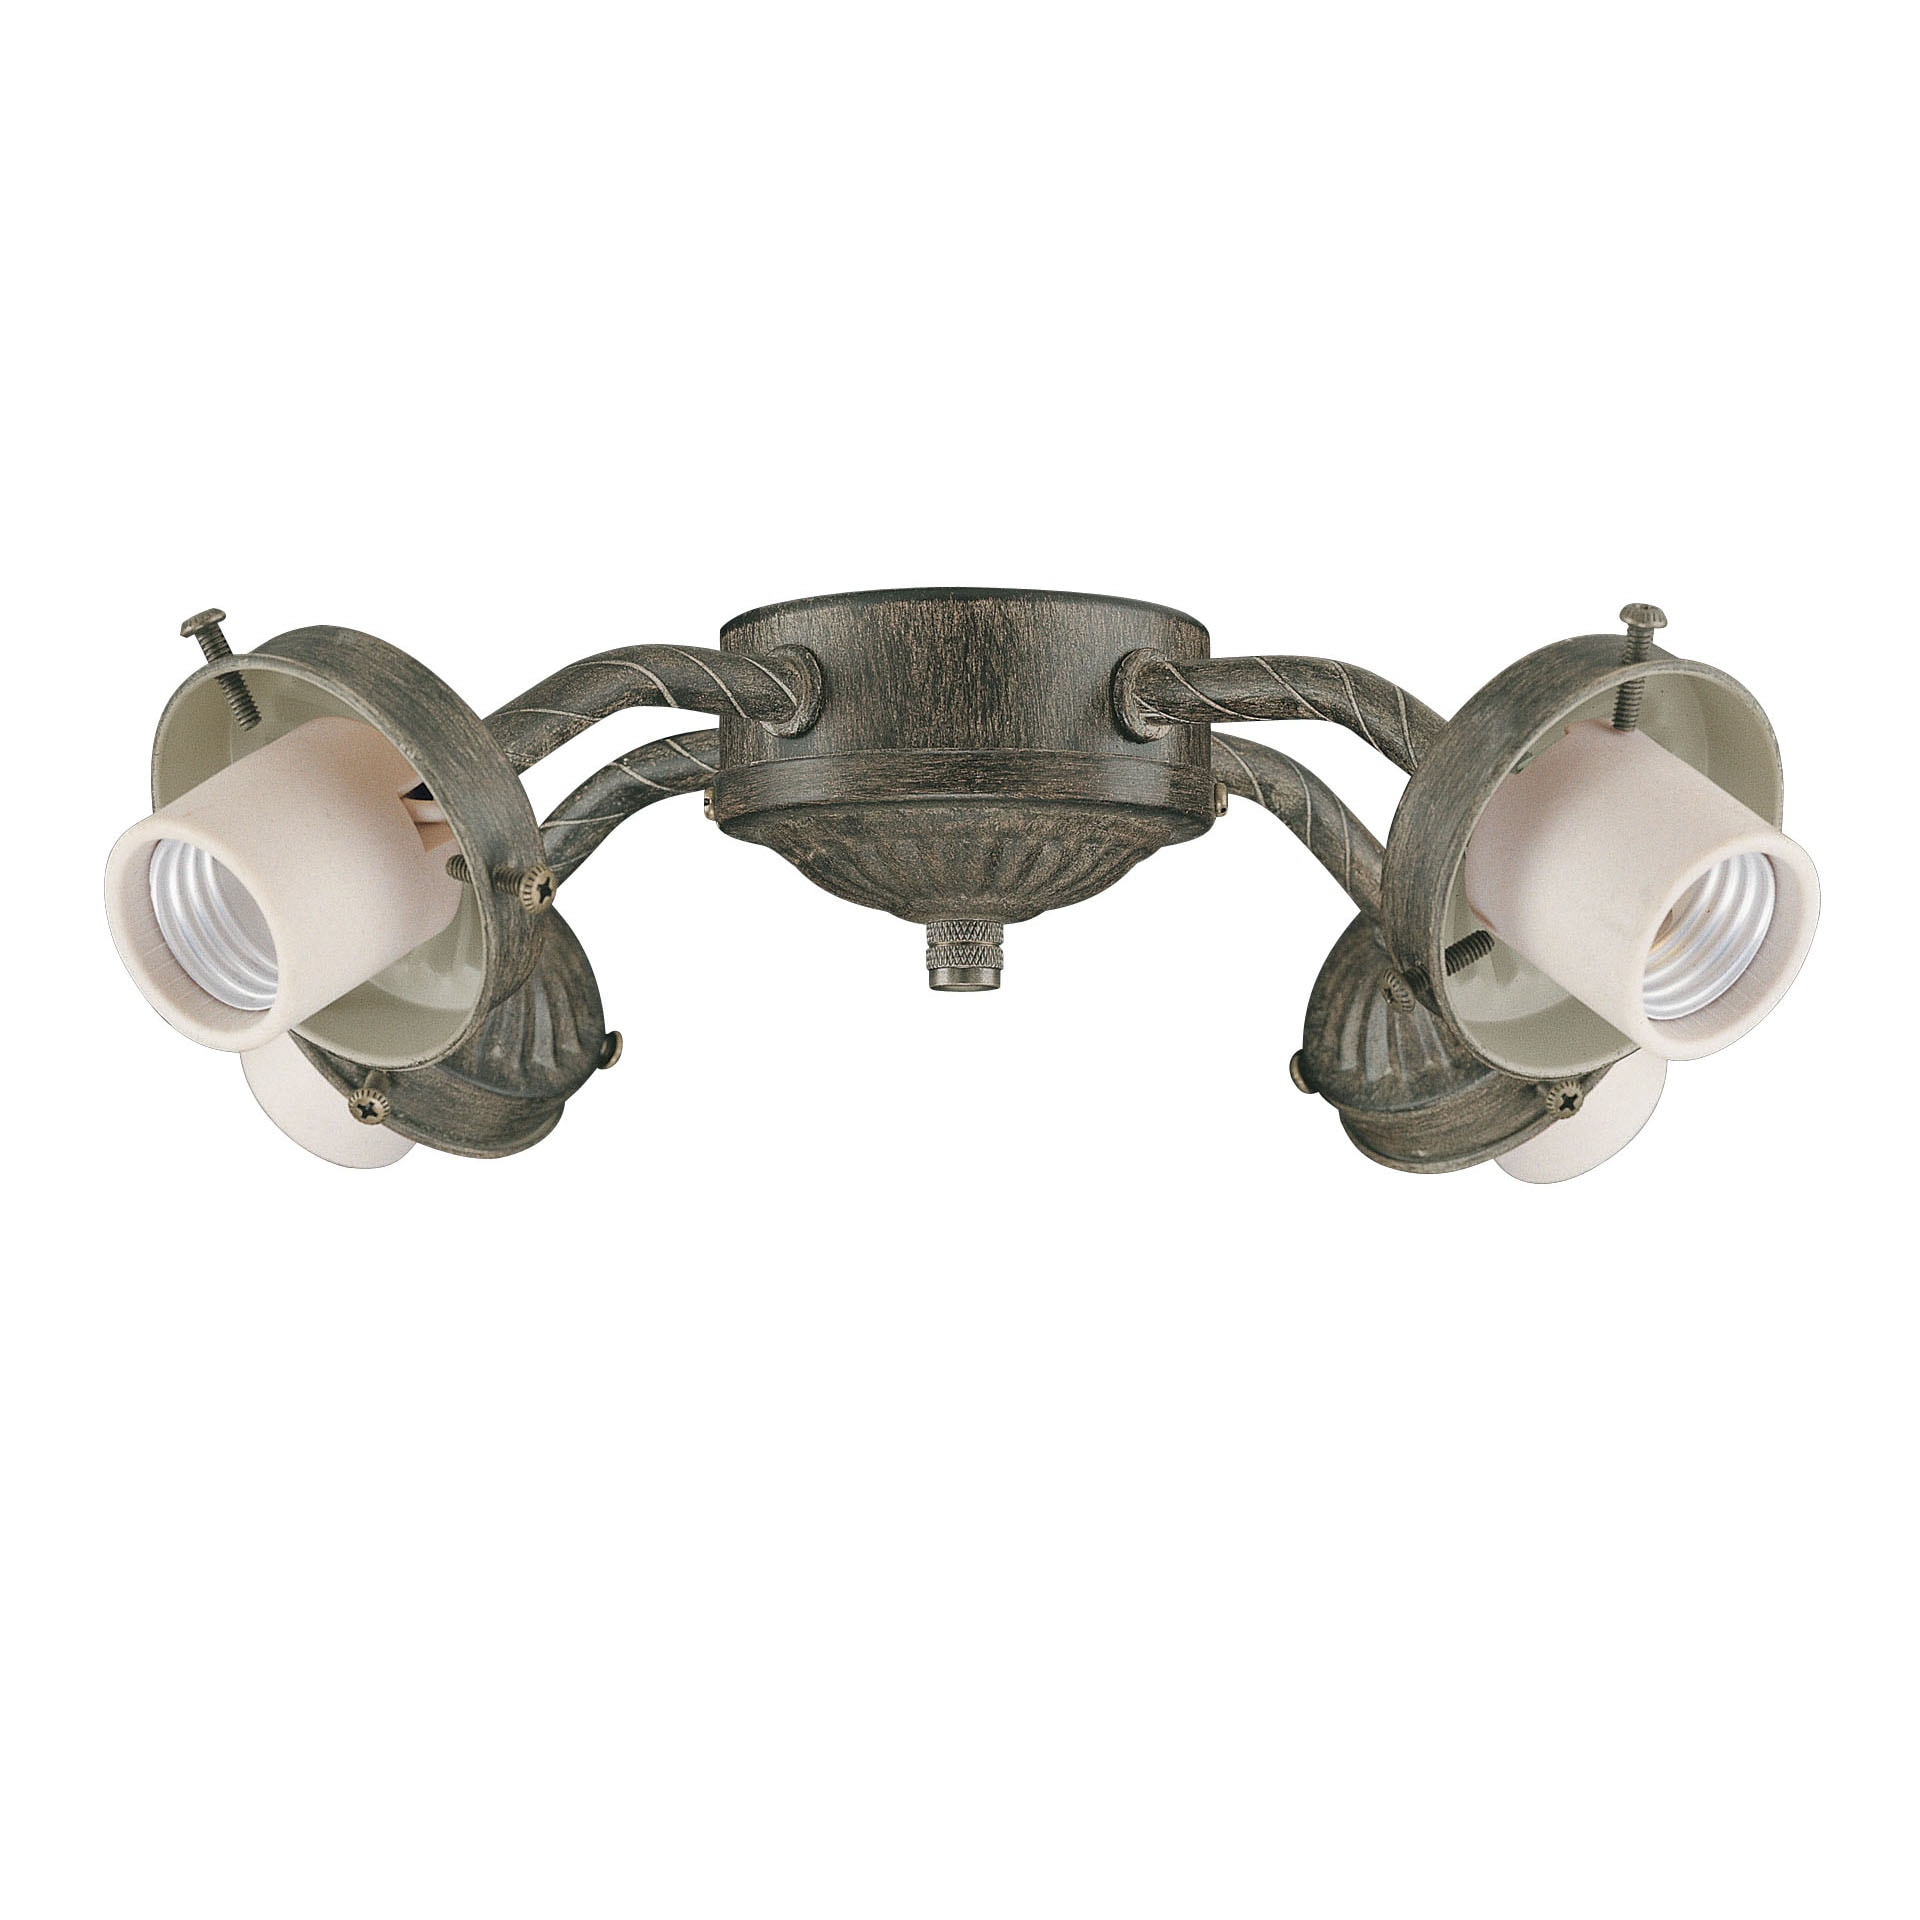 Four Light Aged Pecan Ceiling Fan Light Kit - Thumbnail 0